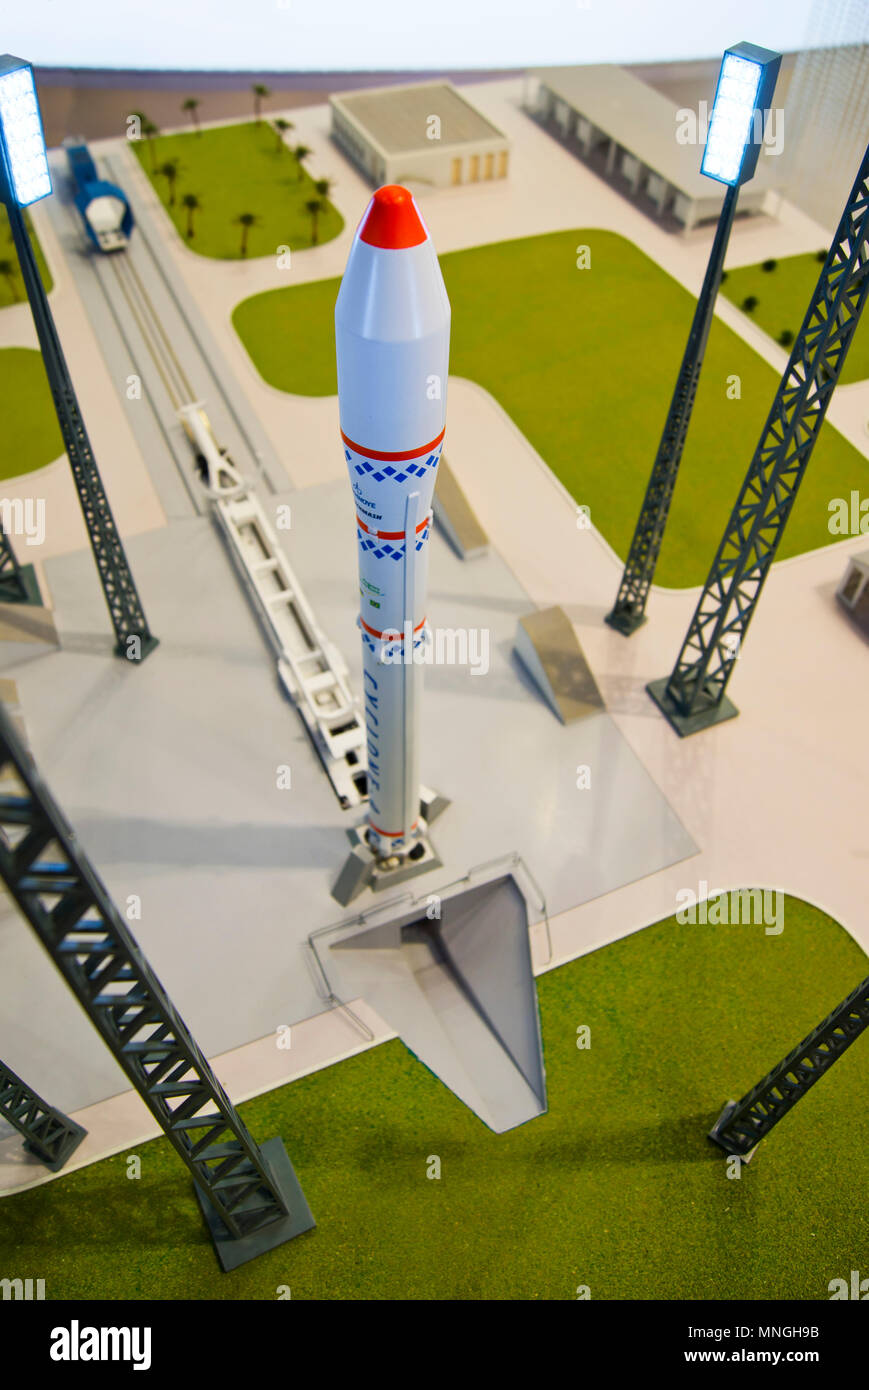 A model of the Russian Cyclone rocket and its launch pad displayed at the 64th IAC in Beijing, China. - Stock Image